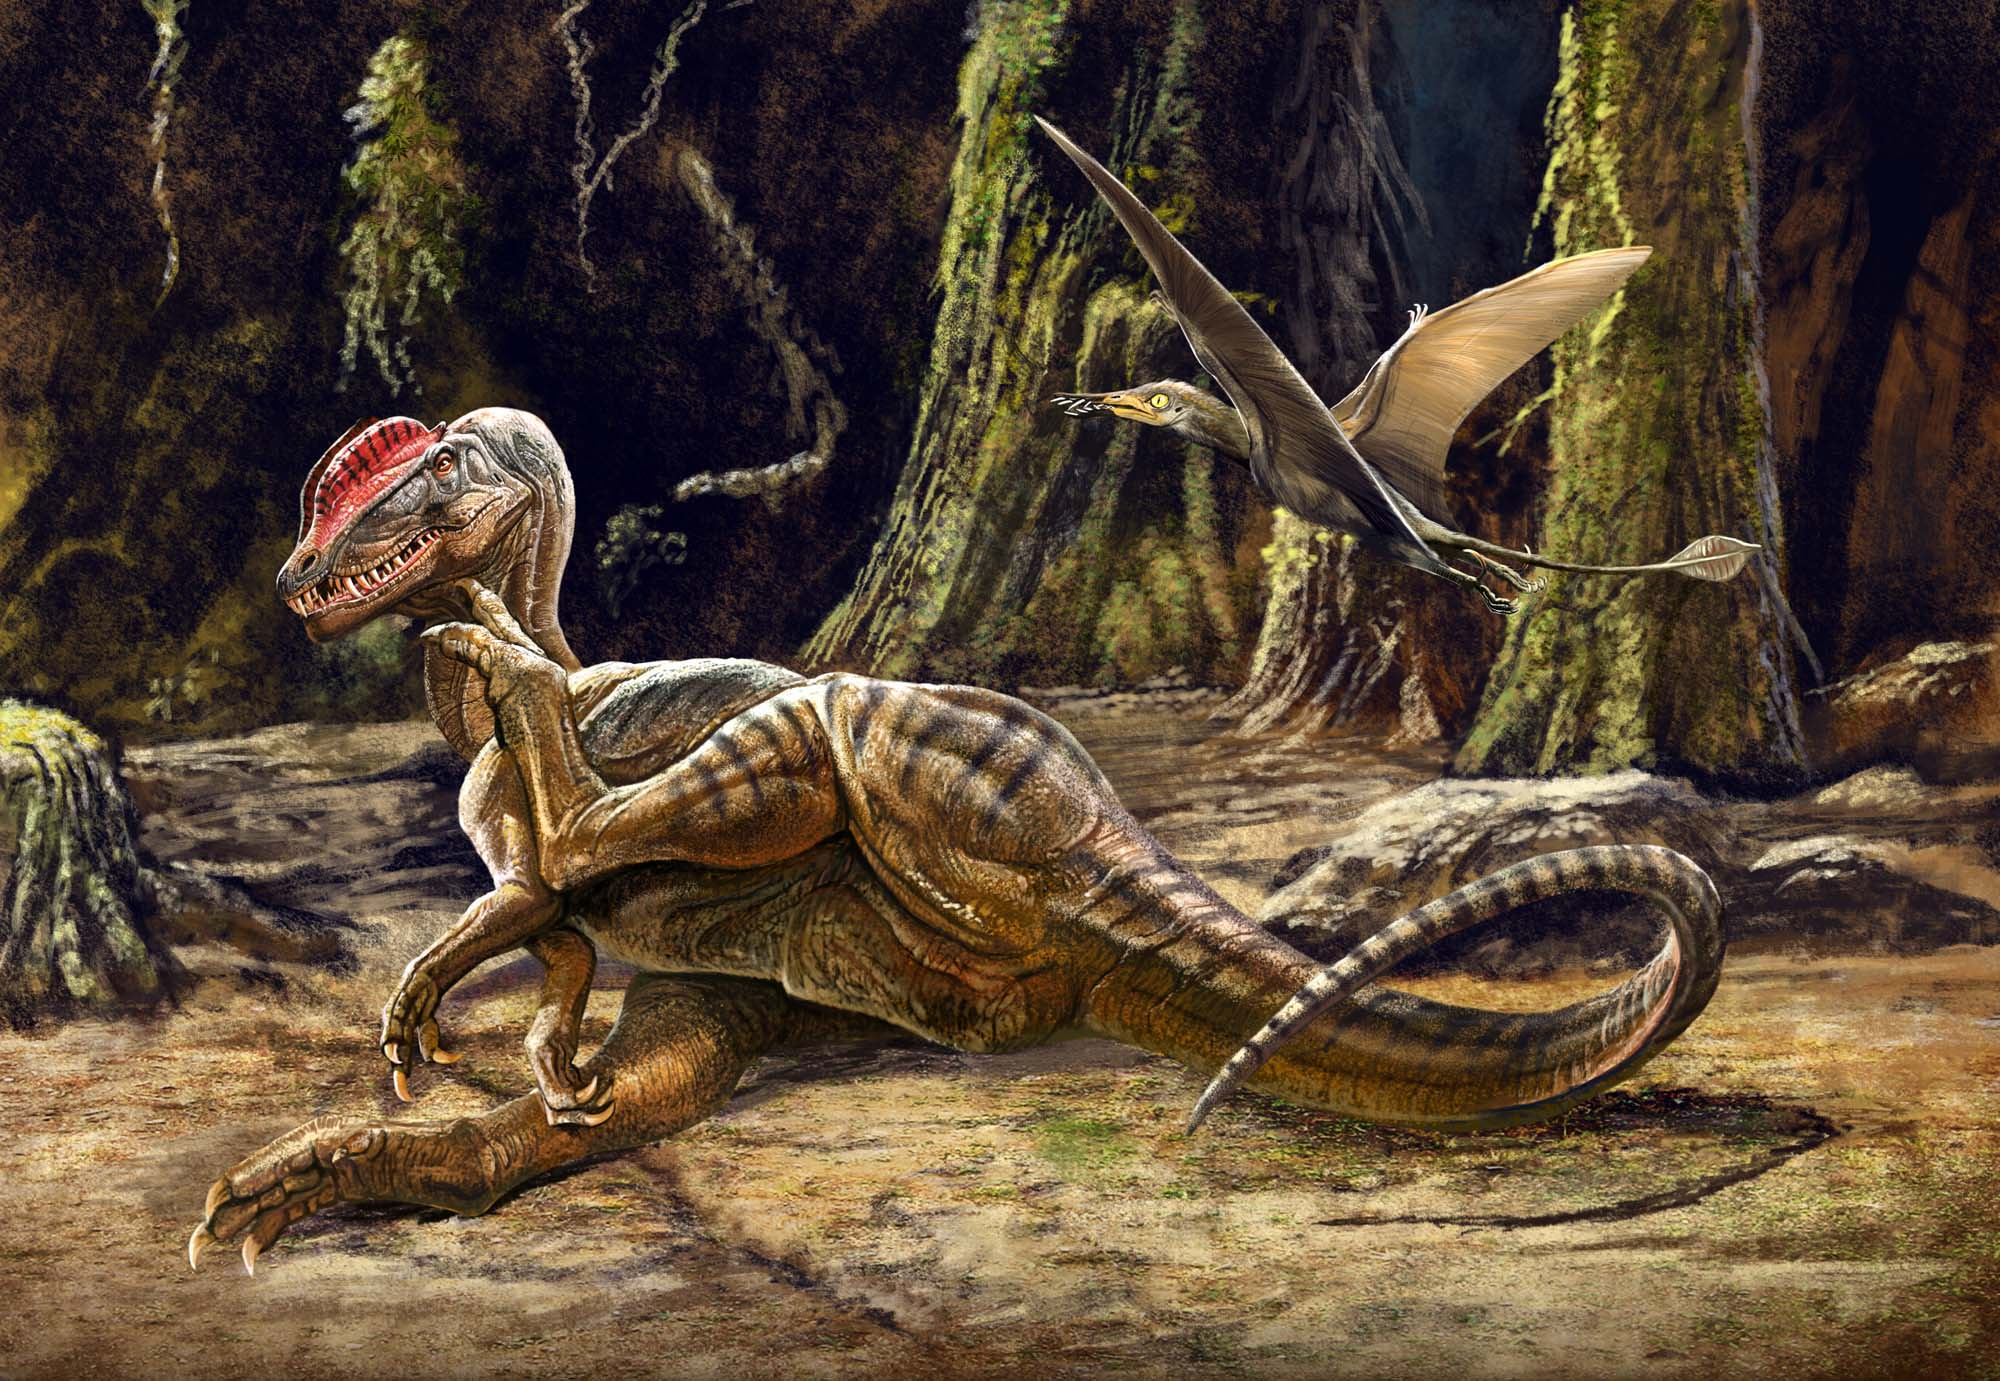 a painting of a dinosaur with a red crest on its head